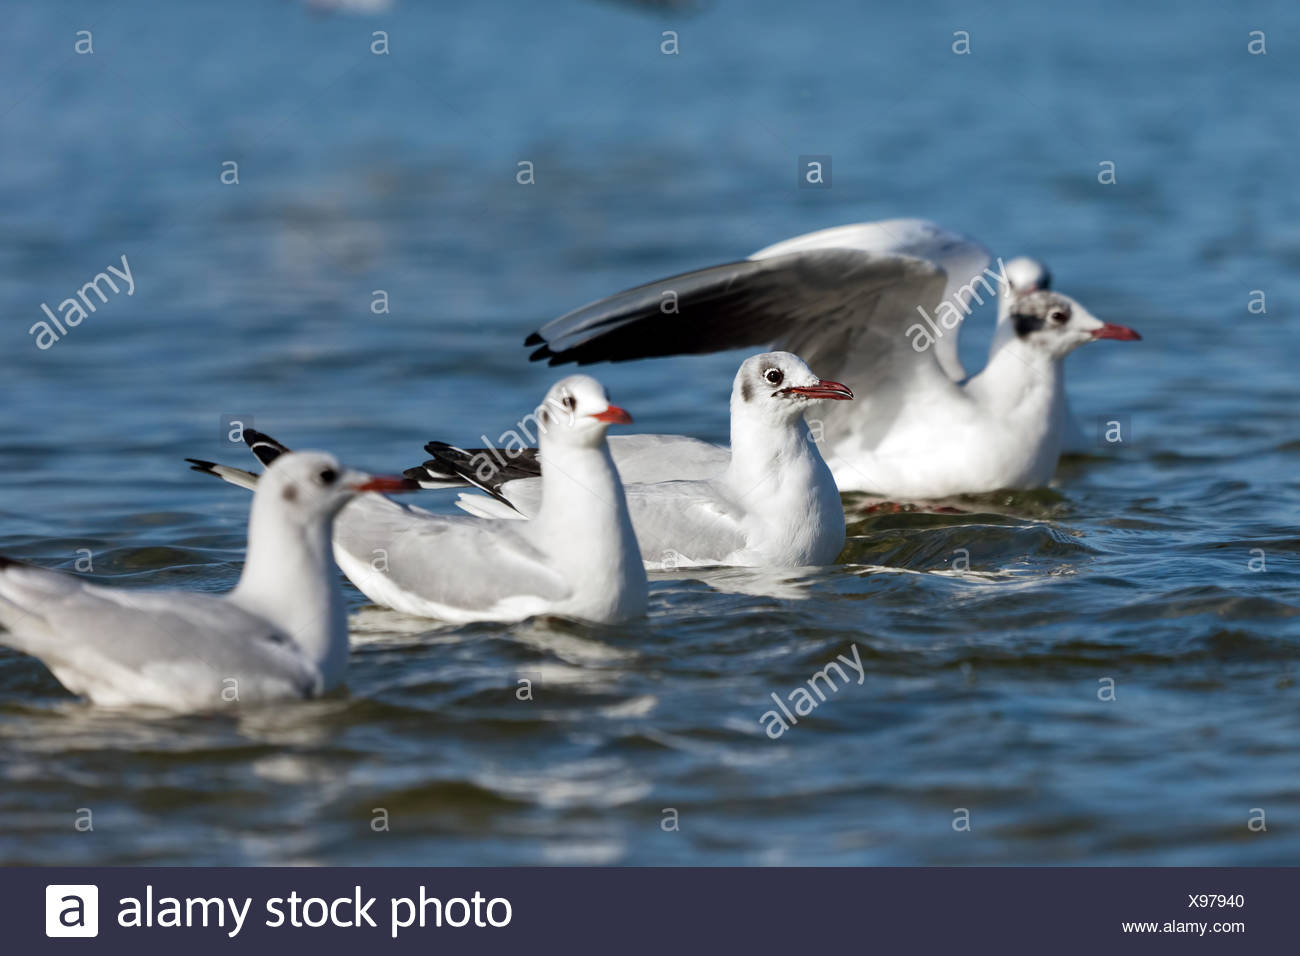 Seagulls floating on the sea in a line. Nature Stock Photo